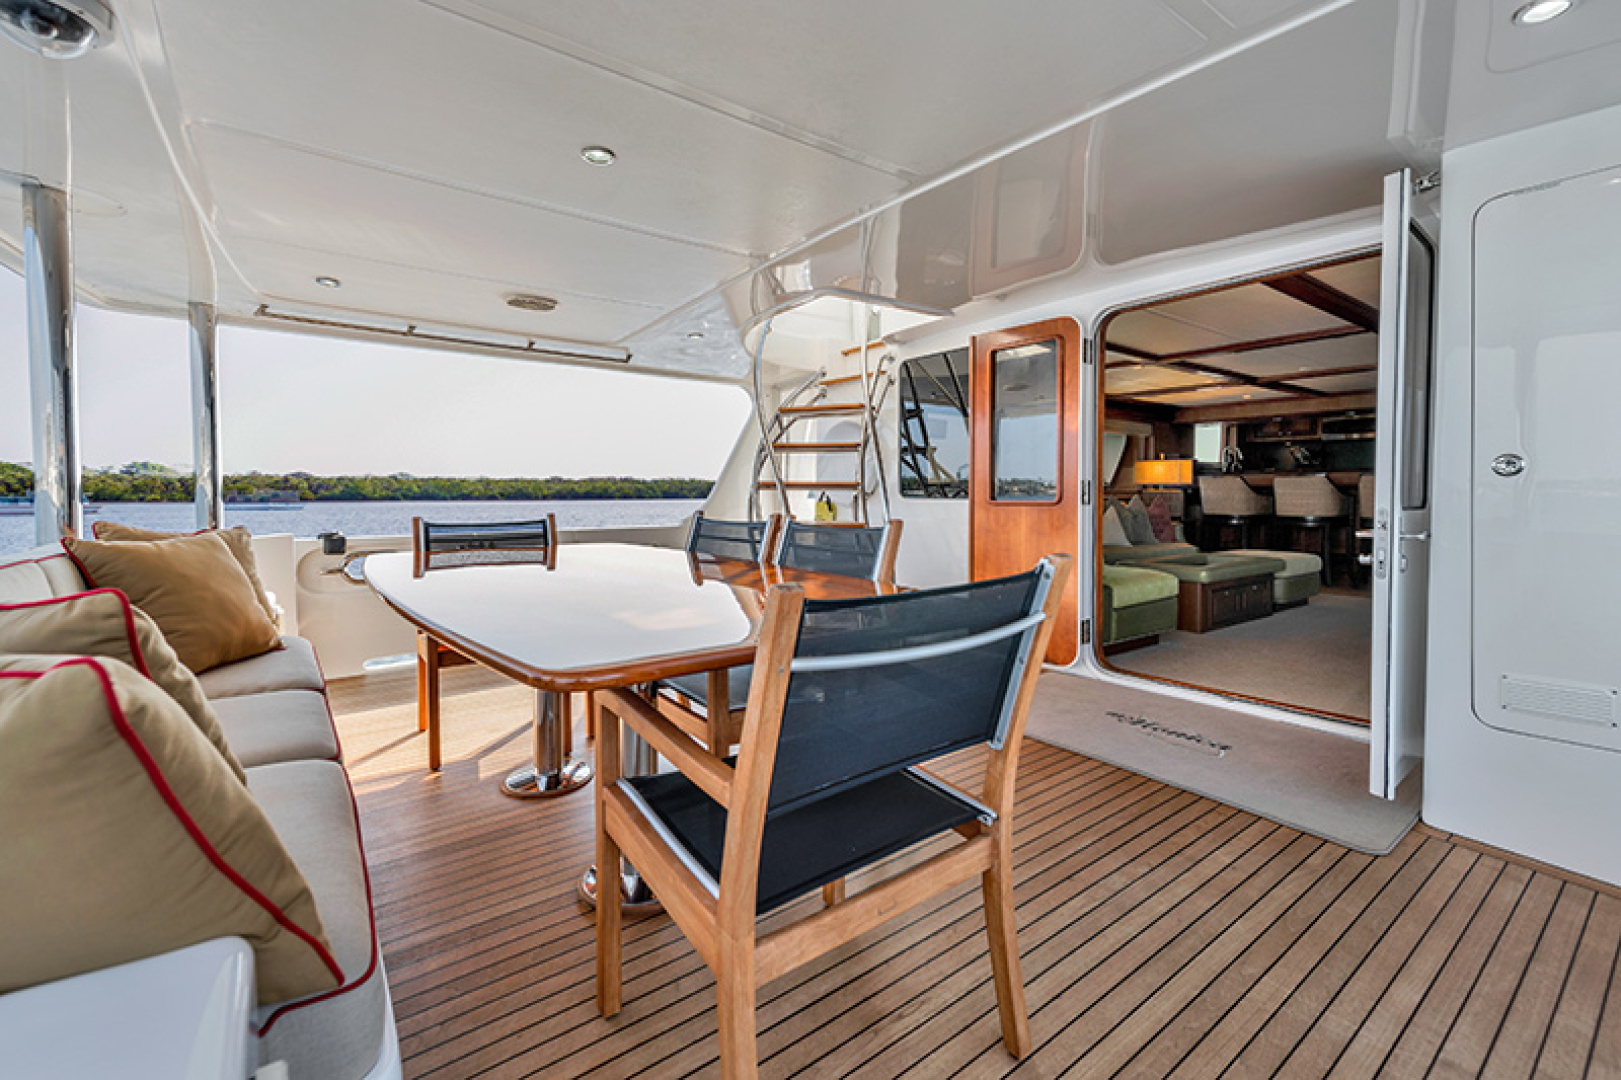 Outer Reef Yachts-Raised Pilothouse 2007-MS. MONICA Palm Beach Gardens-Florida-United States-Aft Deck-1119574   Thumbnail